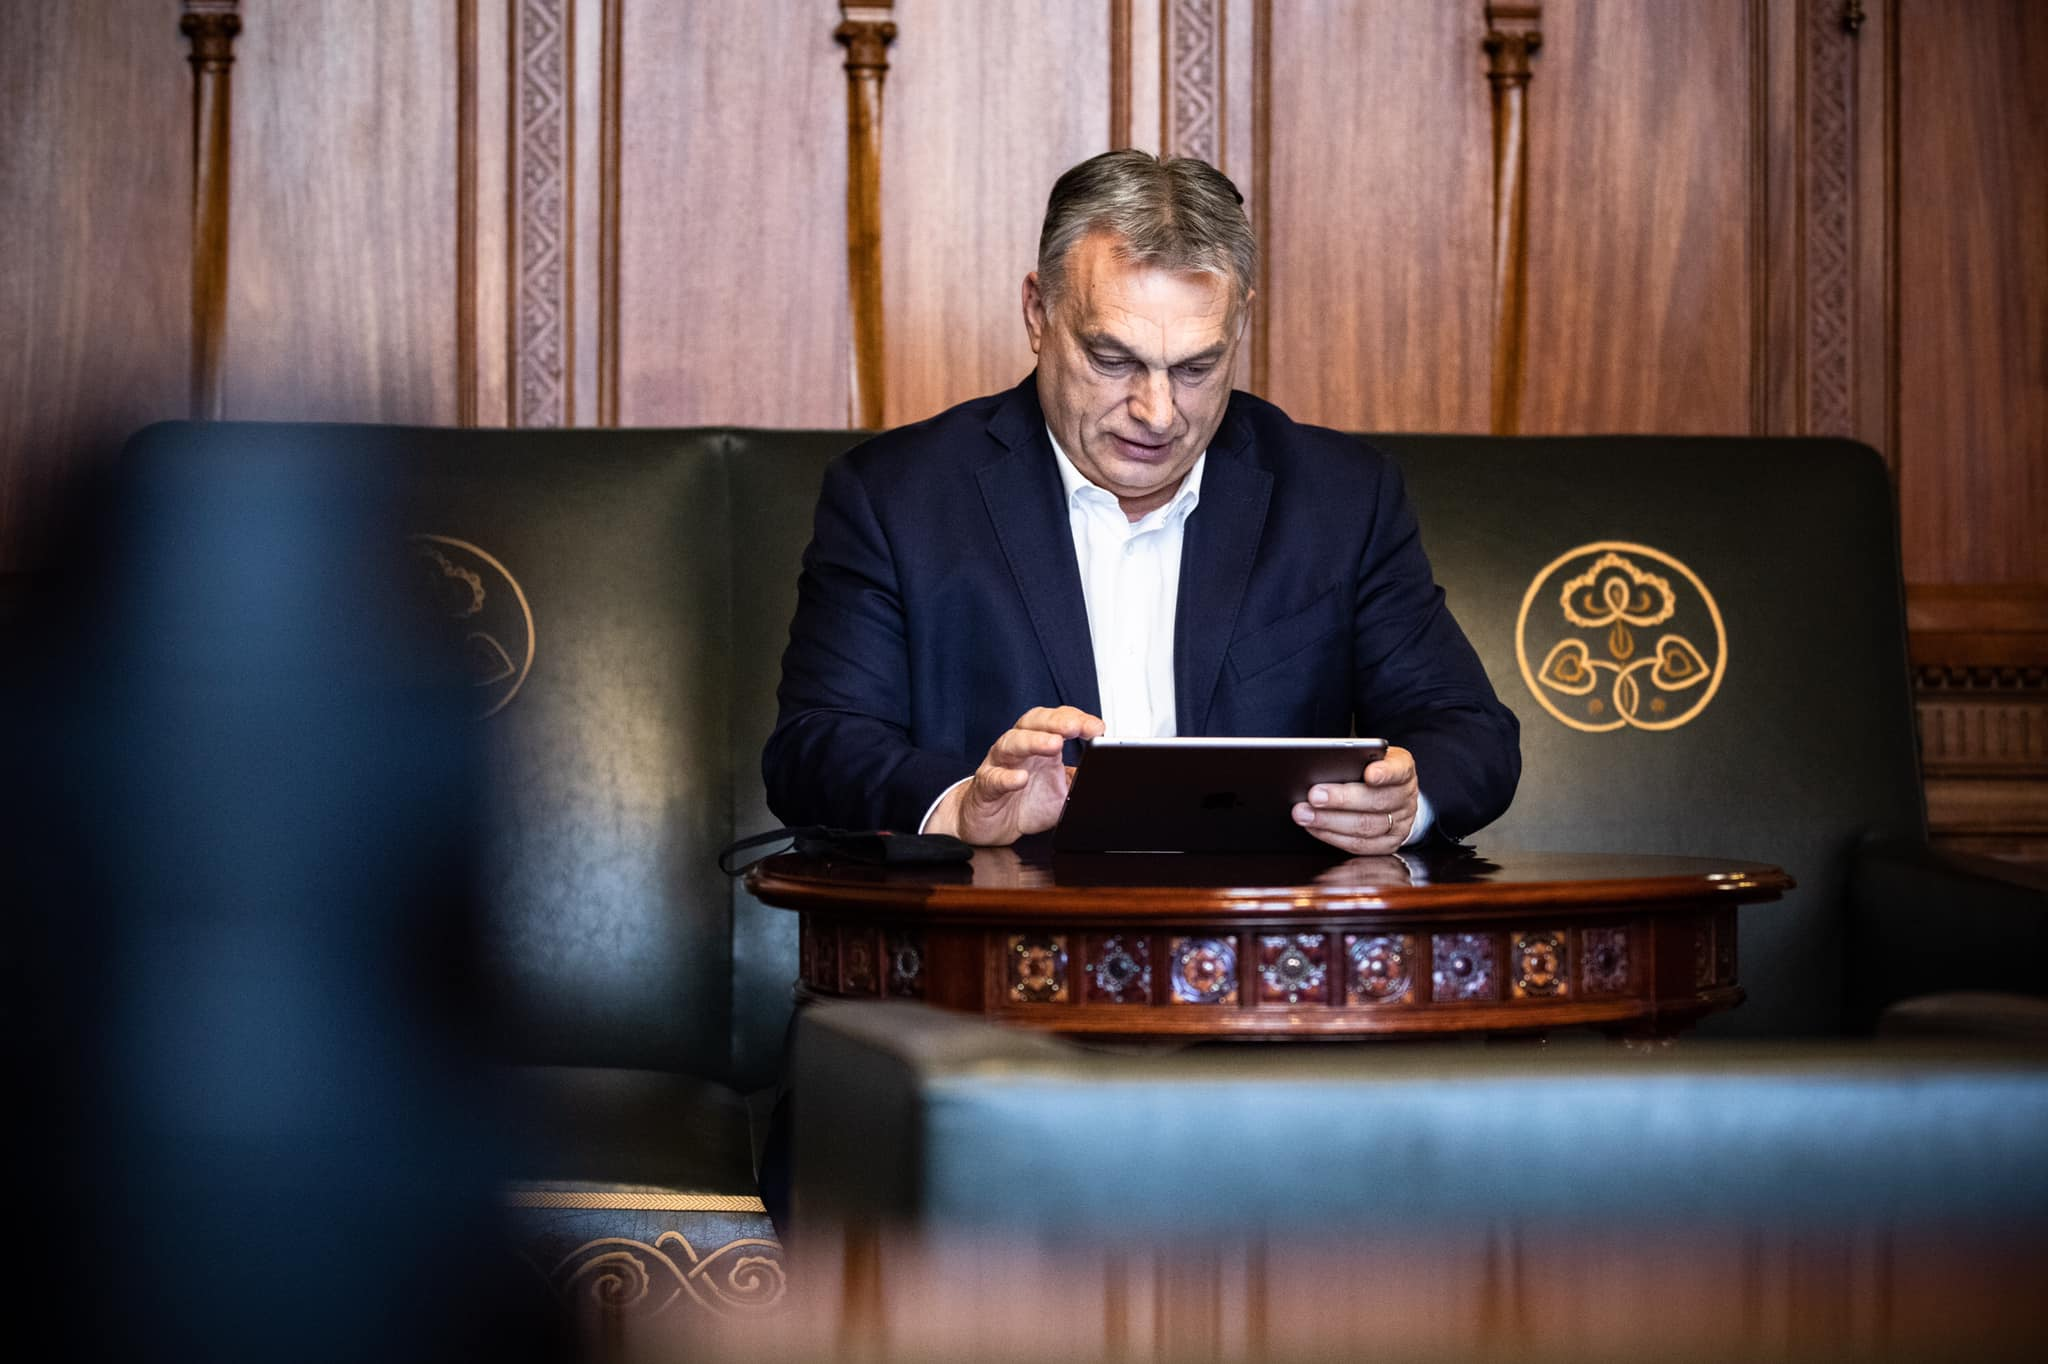 Orbán on Consultation on Reopening: 'Everybody's opinion counts'